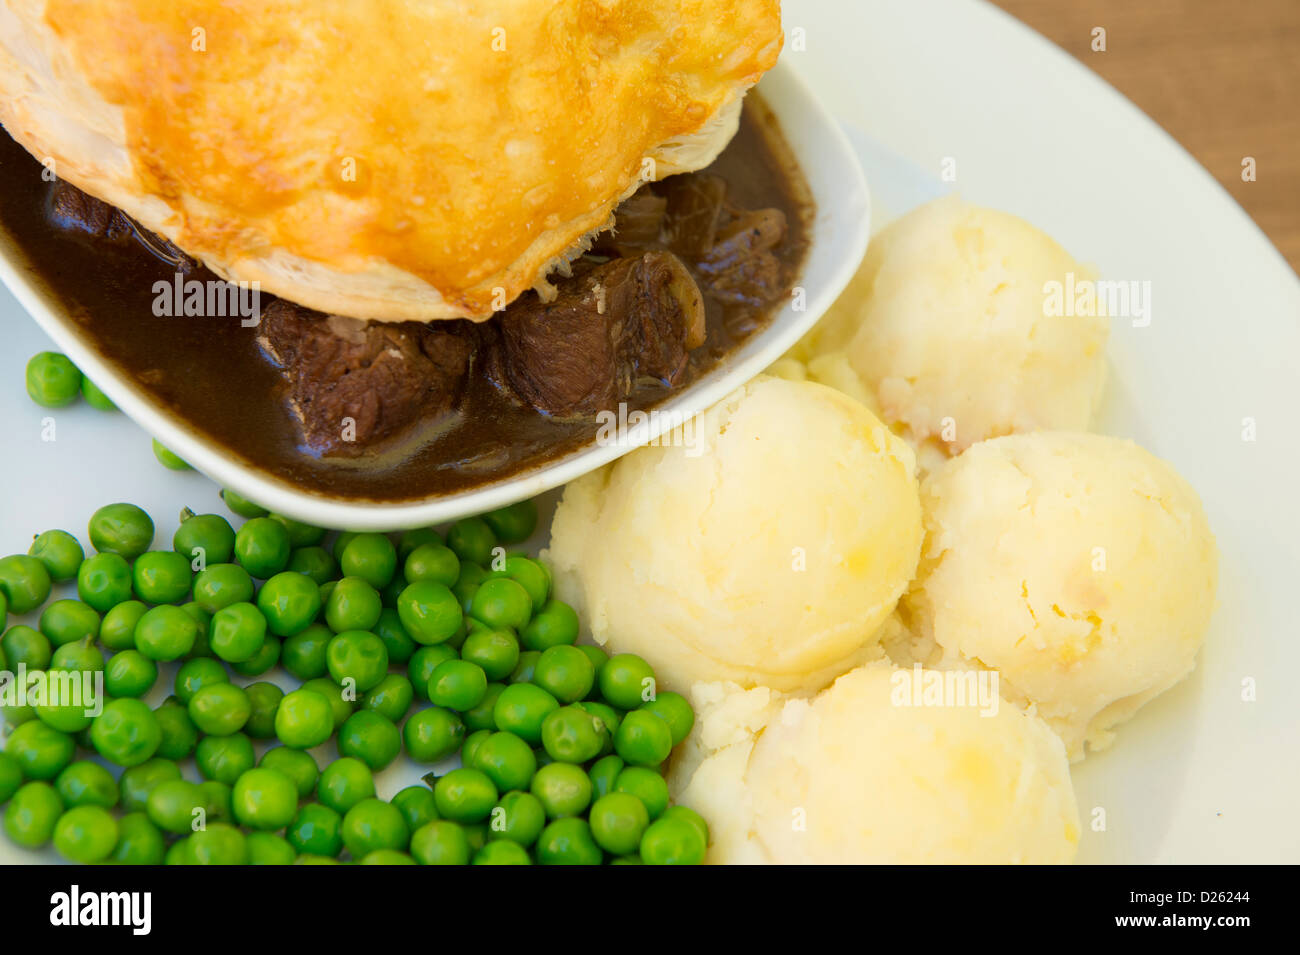 Tasty looking meat pie served with mashed potatoes and peas. - Stock Image